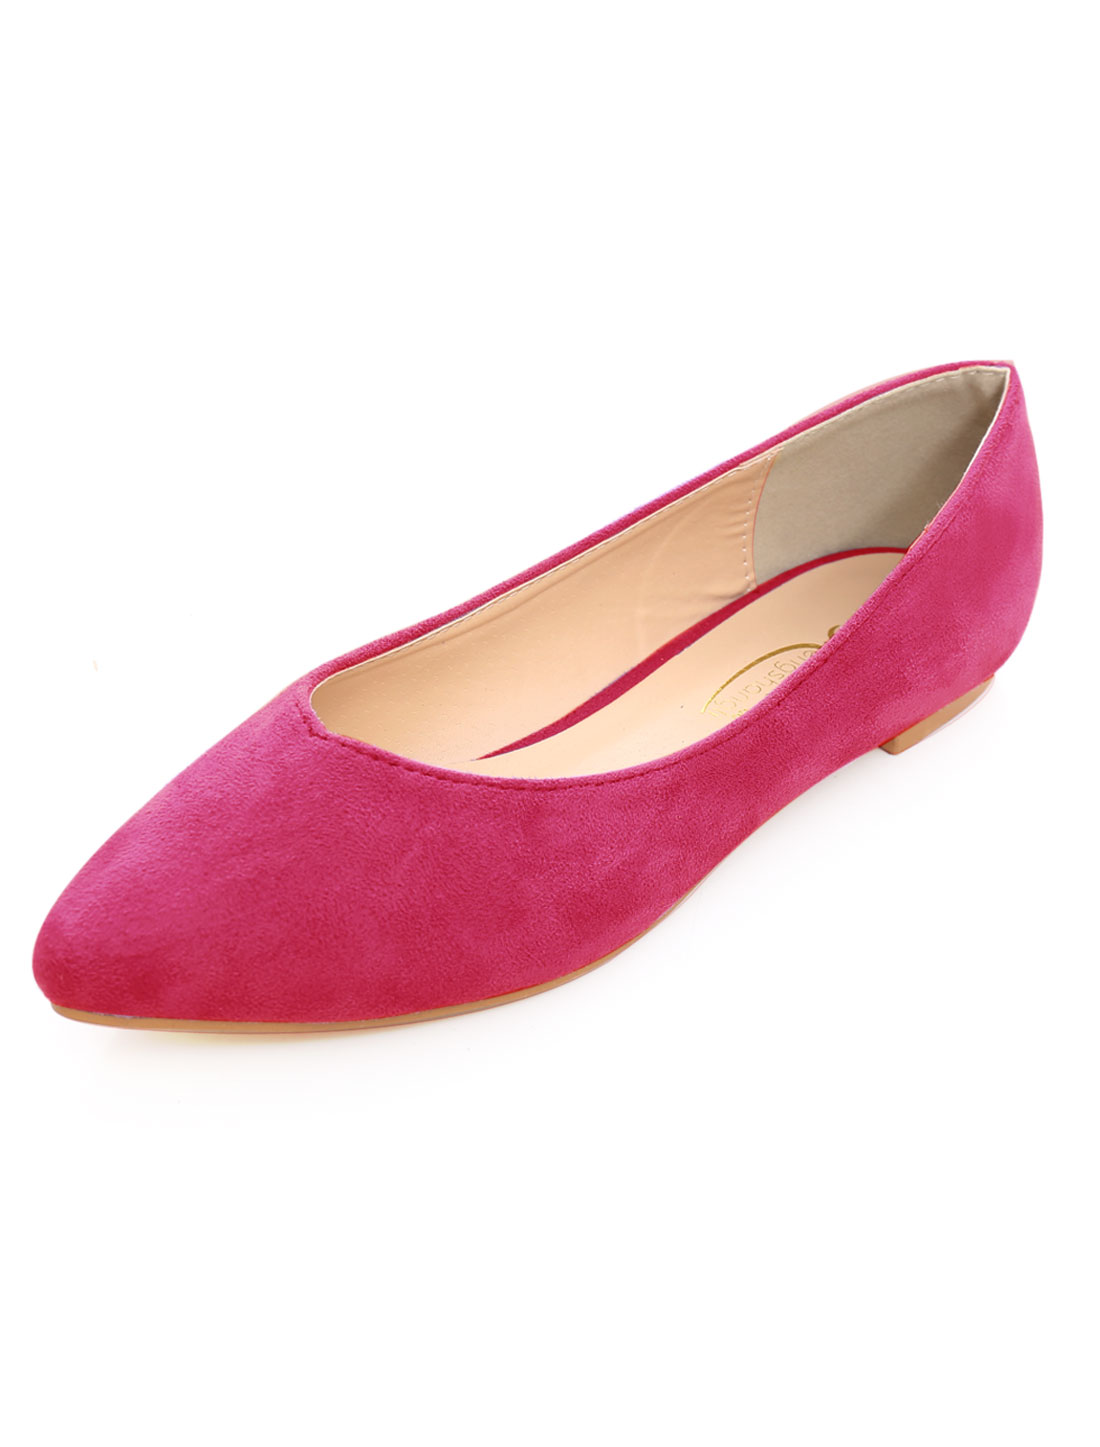 Ladies Faux Suede V-Cut Vamp Pointed Slip On Ballet Flats Fuchsia 7.5